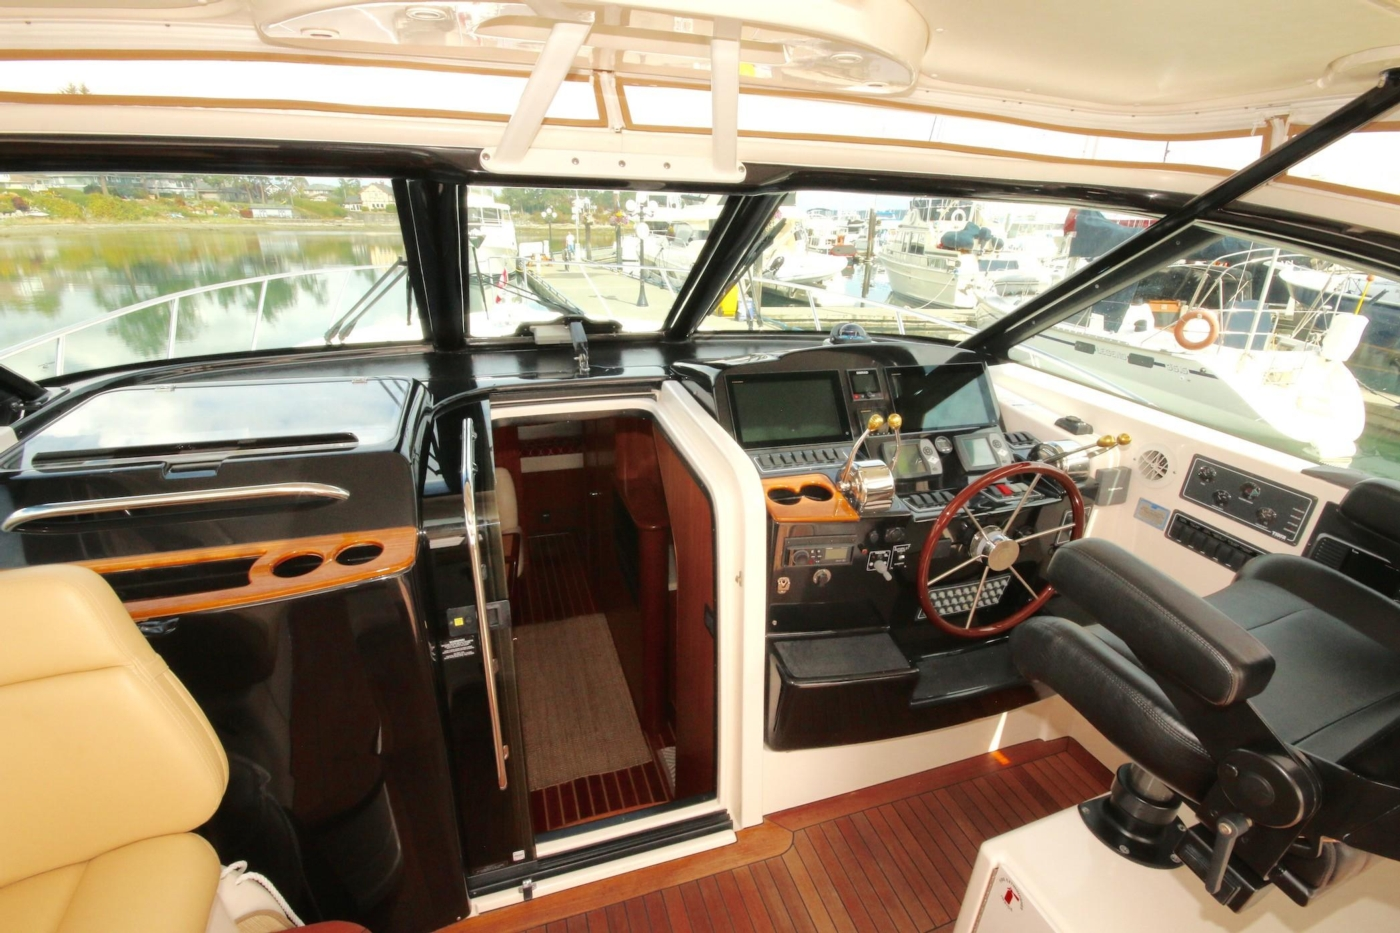 2007 Tiara 4200 Open, helm and companionway